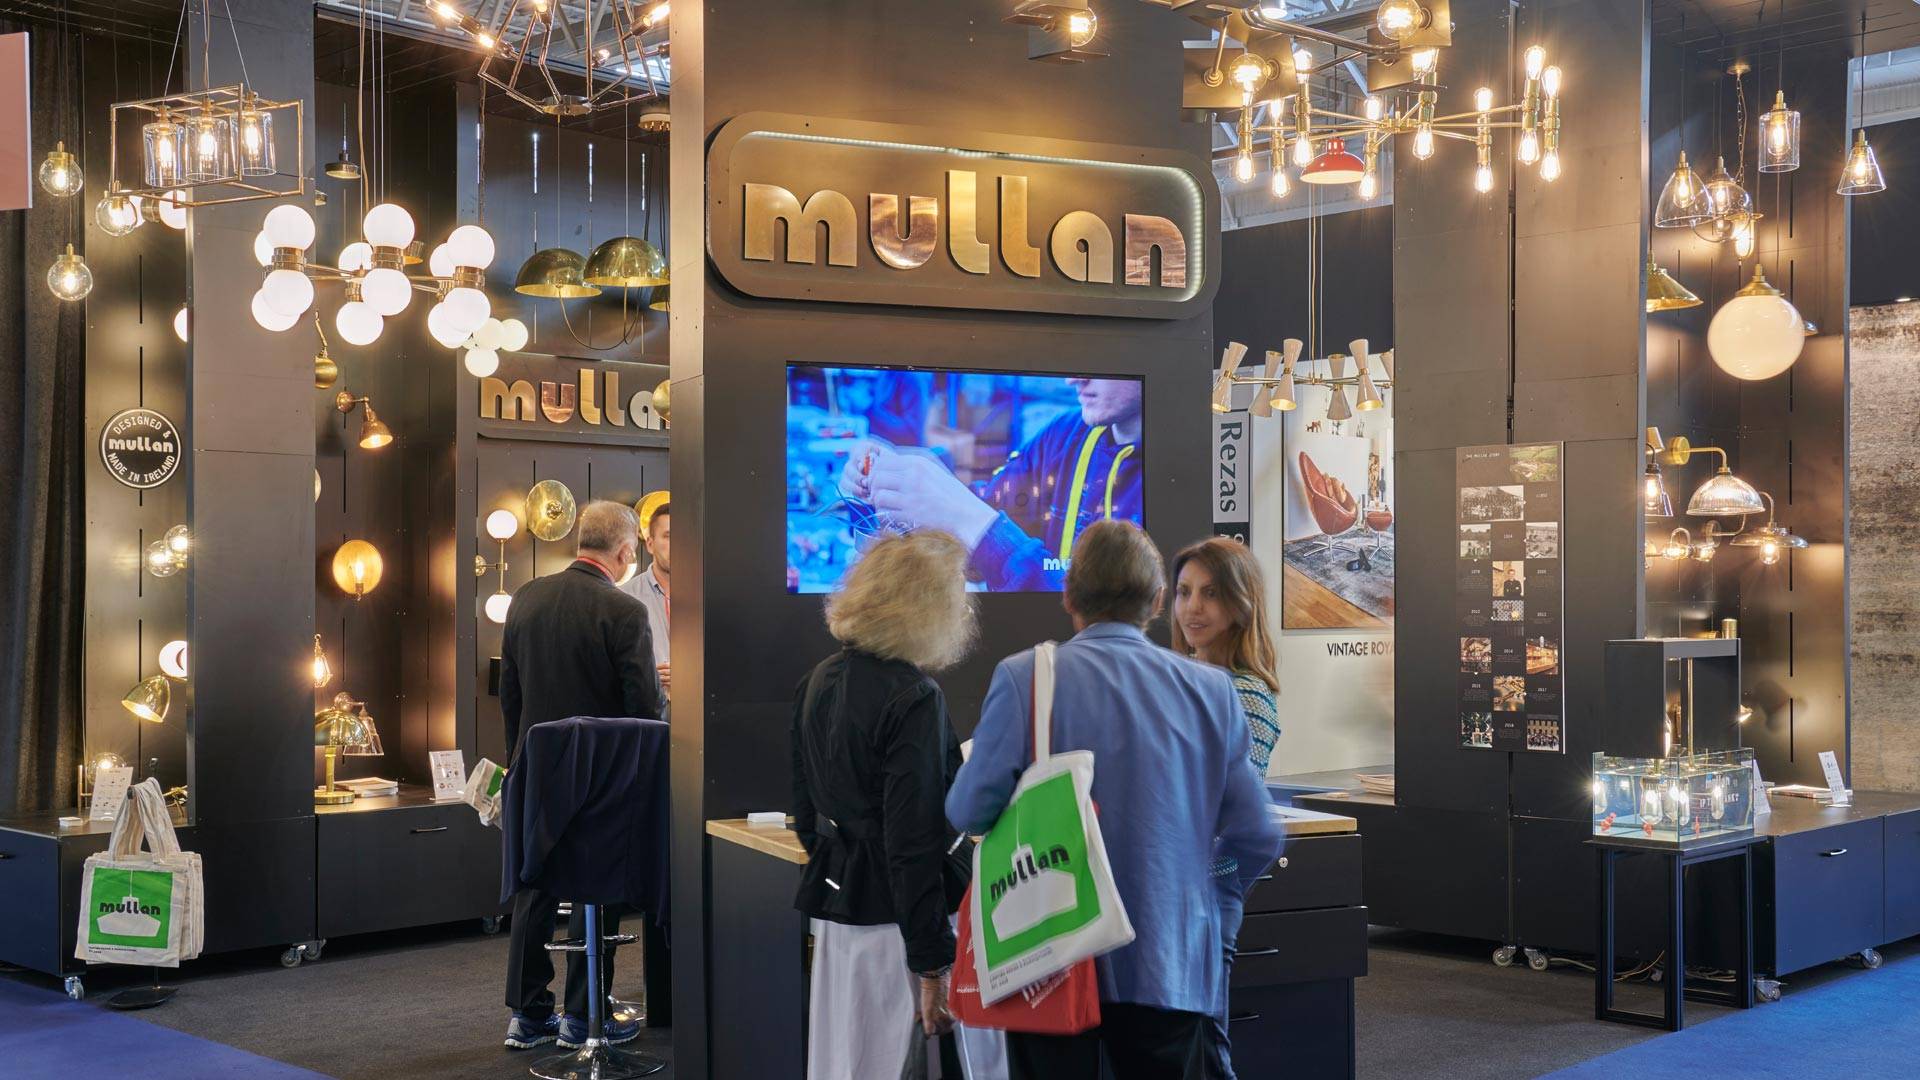 We're returning to Sweden in February for the Stockholm Furniture & Light Fair